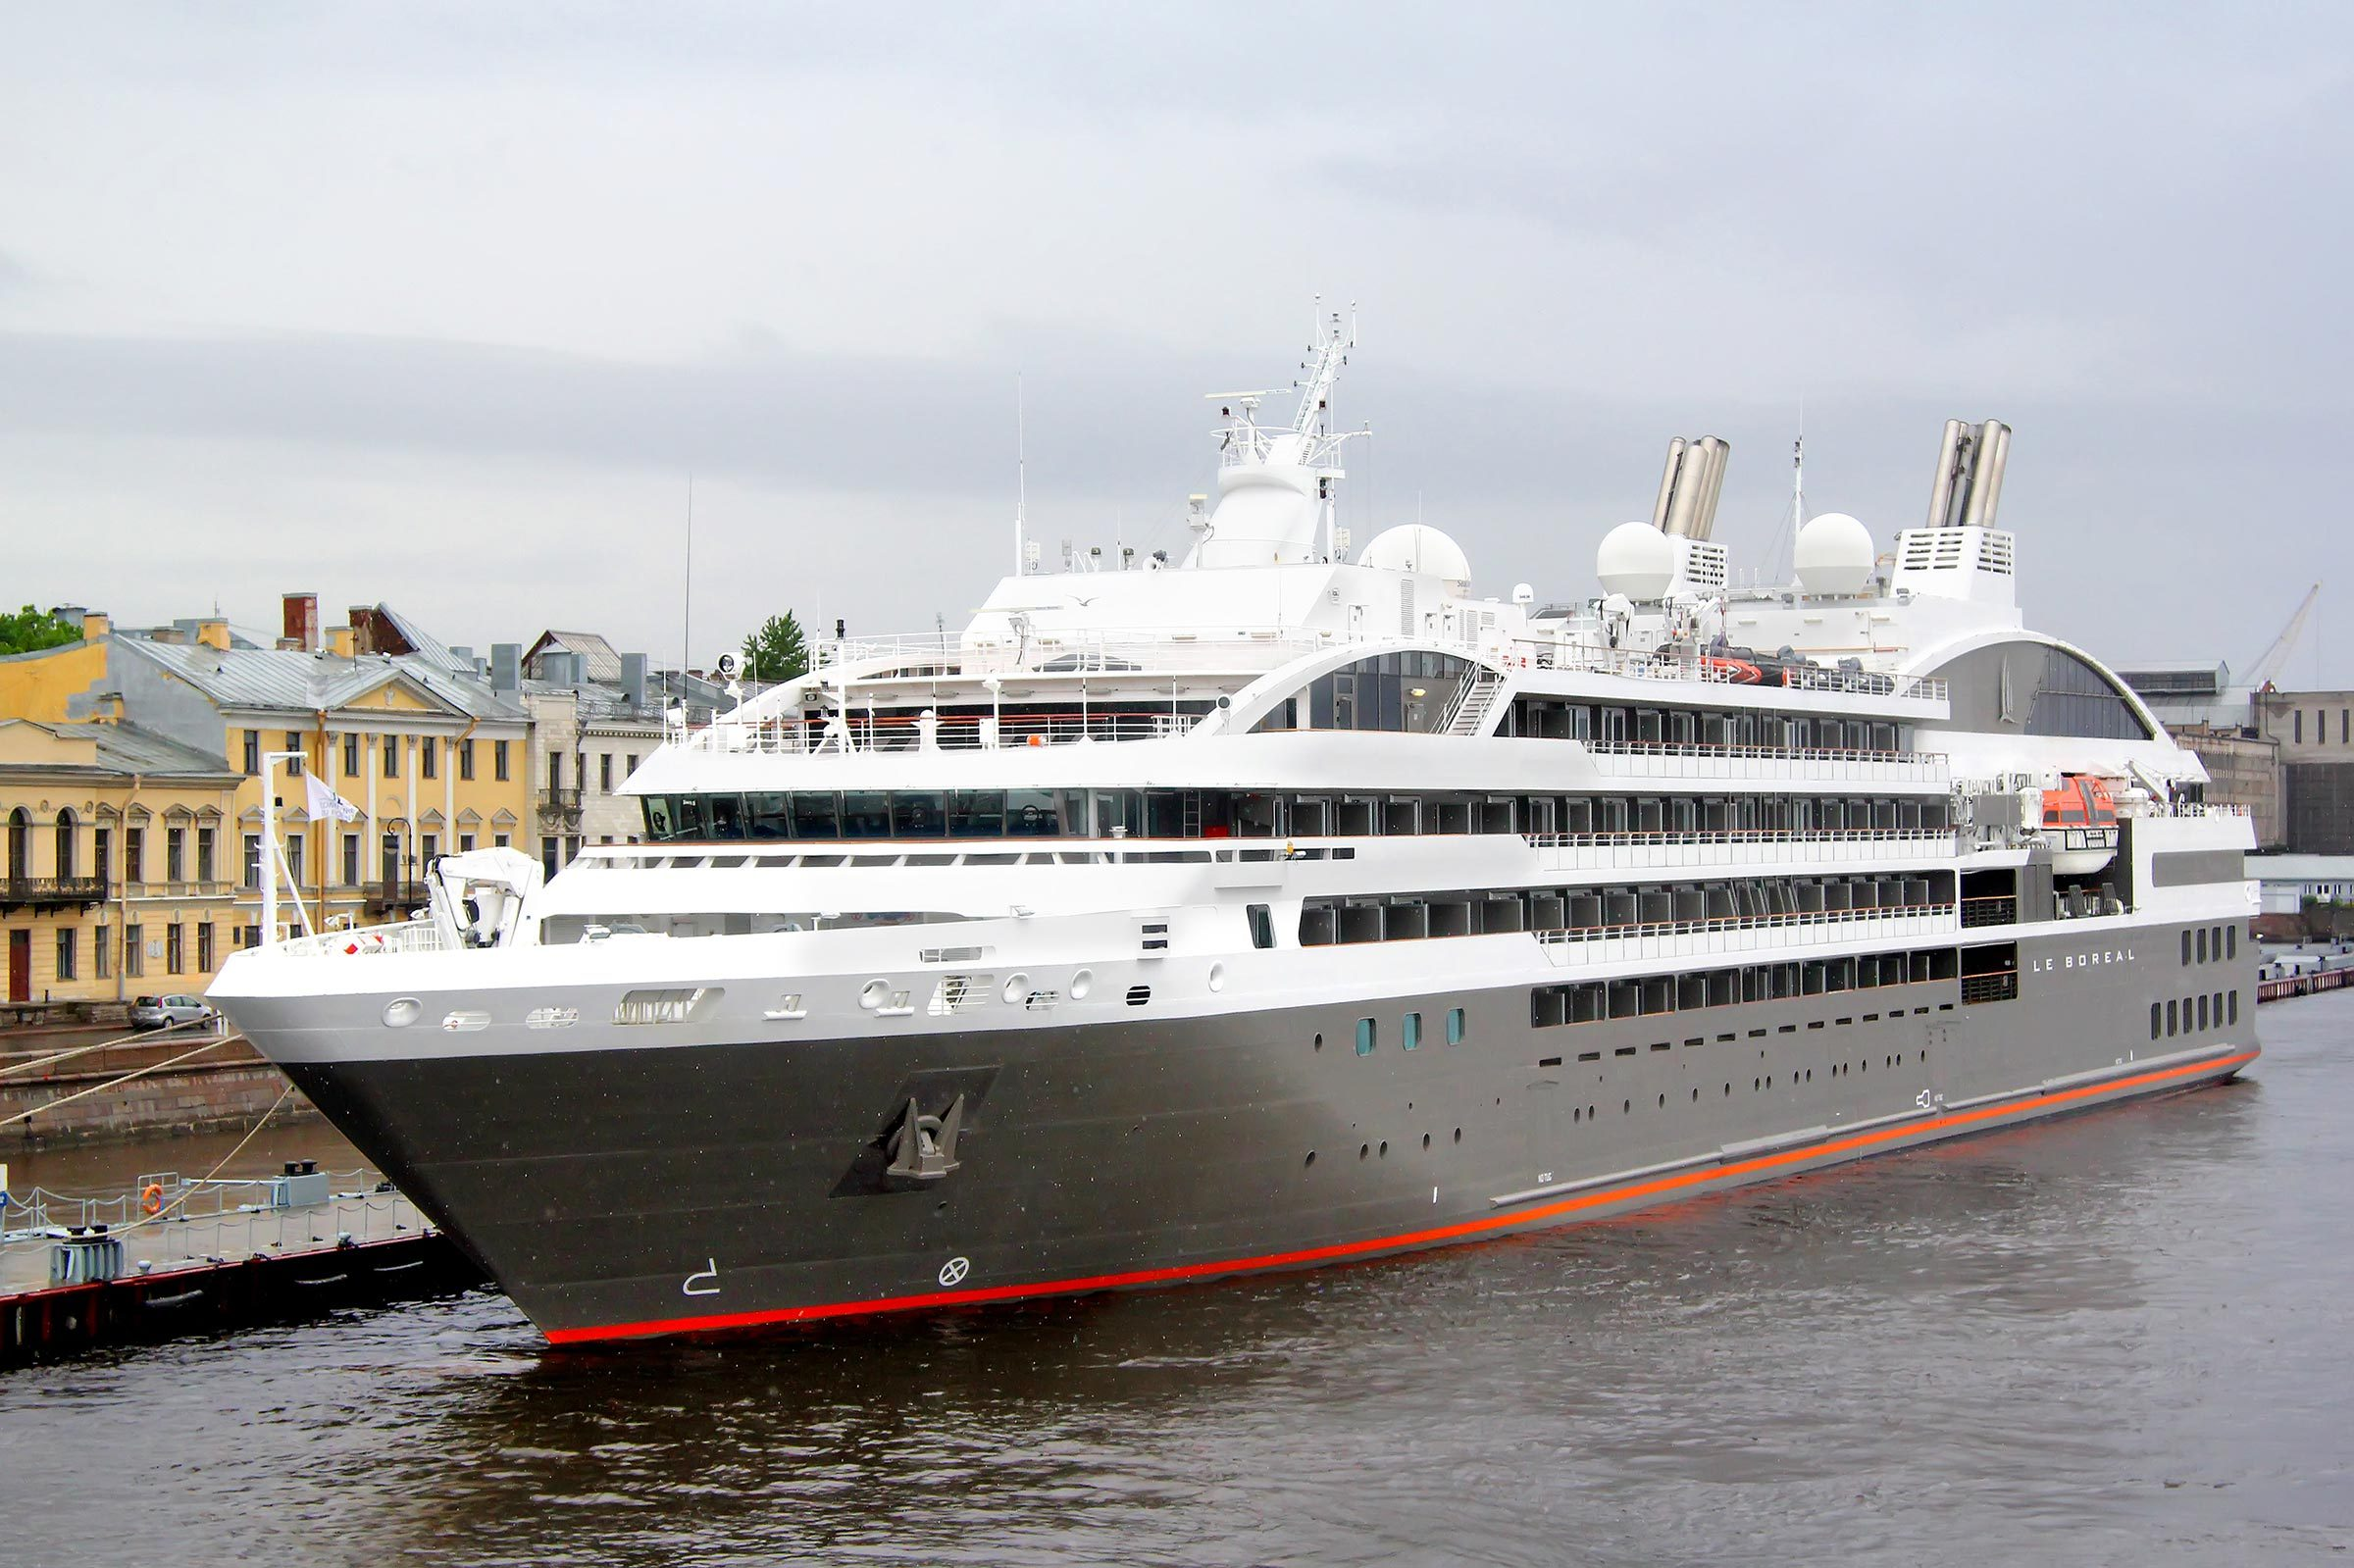 SAINT PETERSBURG - MAY 26, 2013: Le Boreal cruise ship in at the Neva river in Saint Petersburg, Russia.